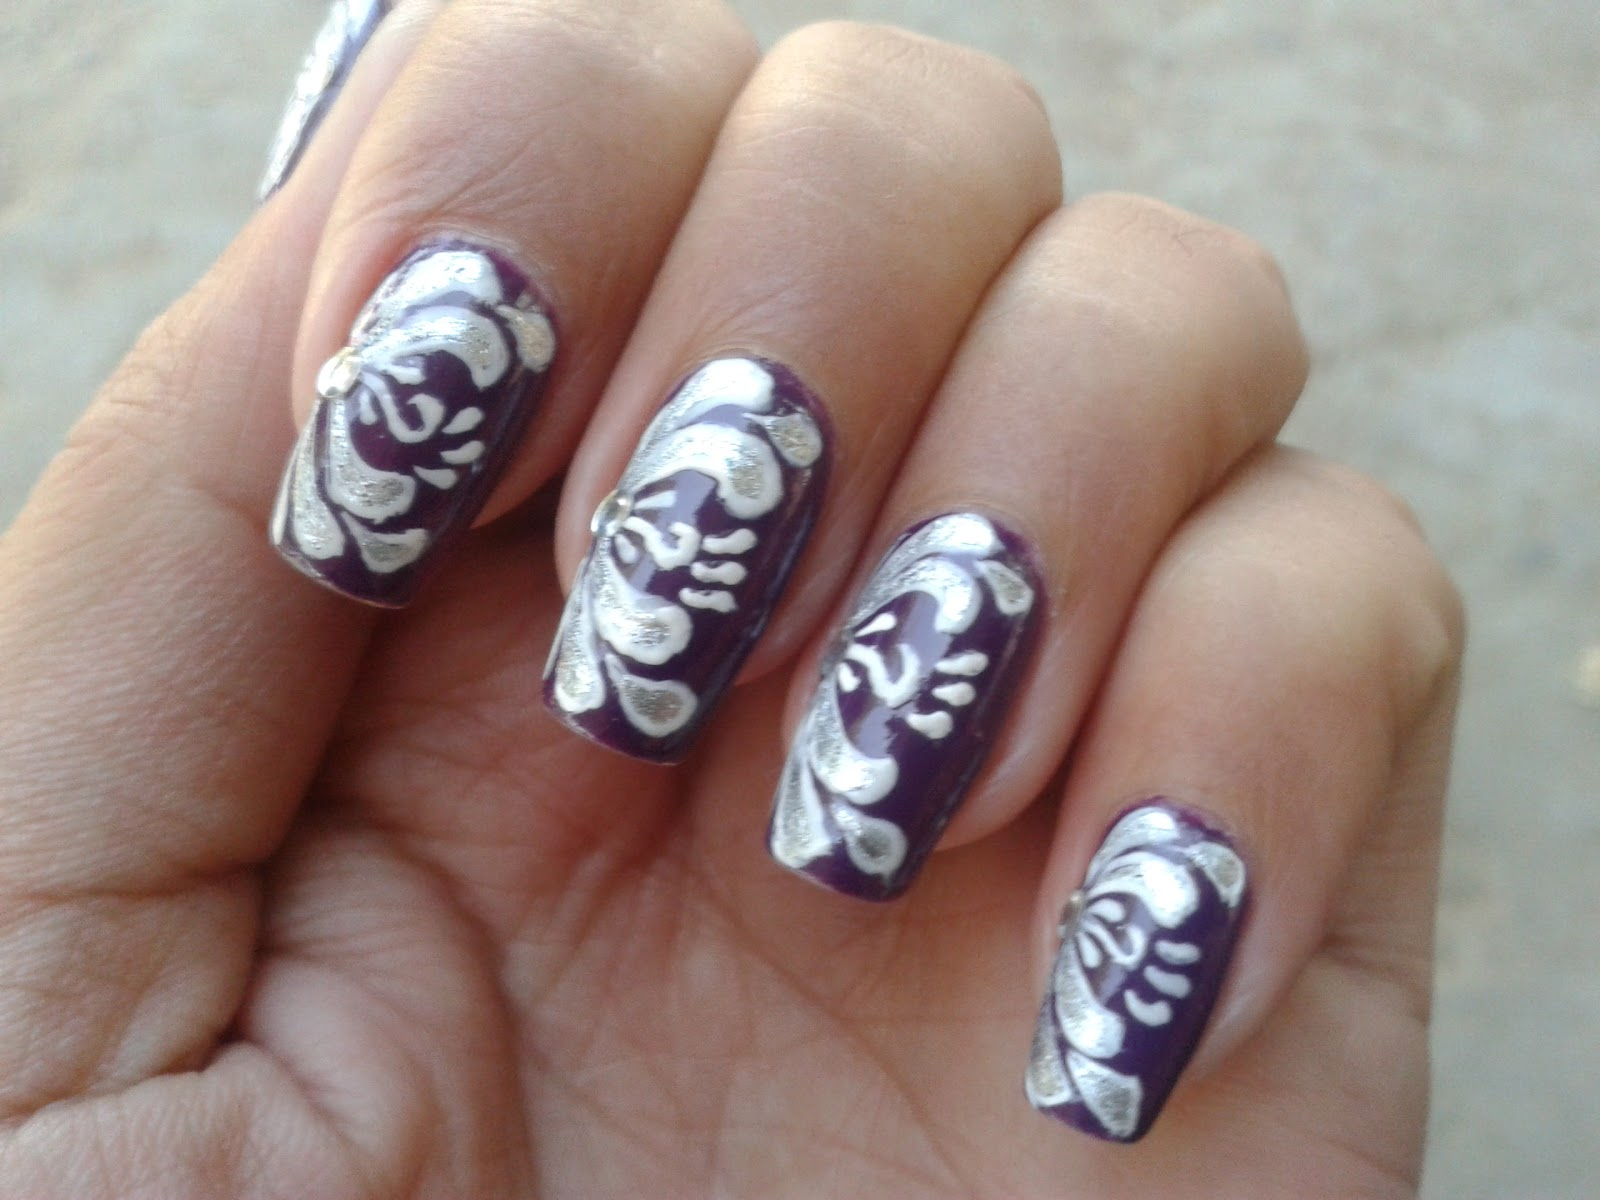 Art Design Pictures : Nail art designs ideas easy tips pictures pccala